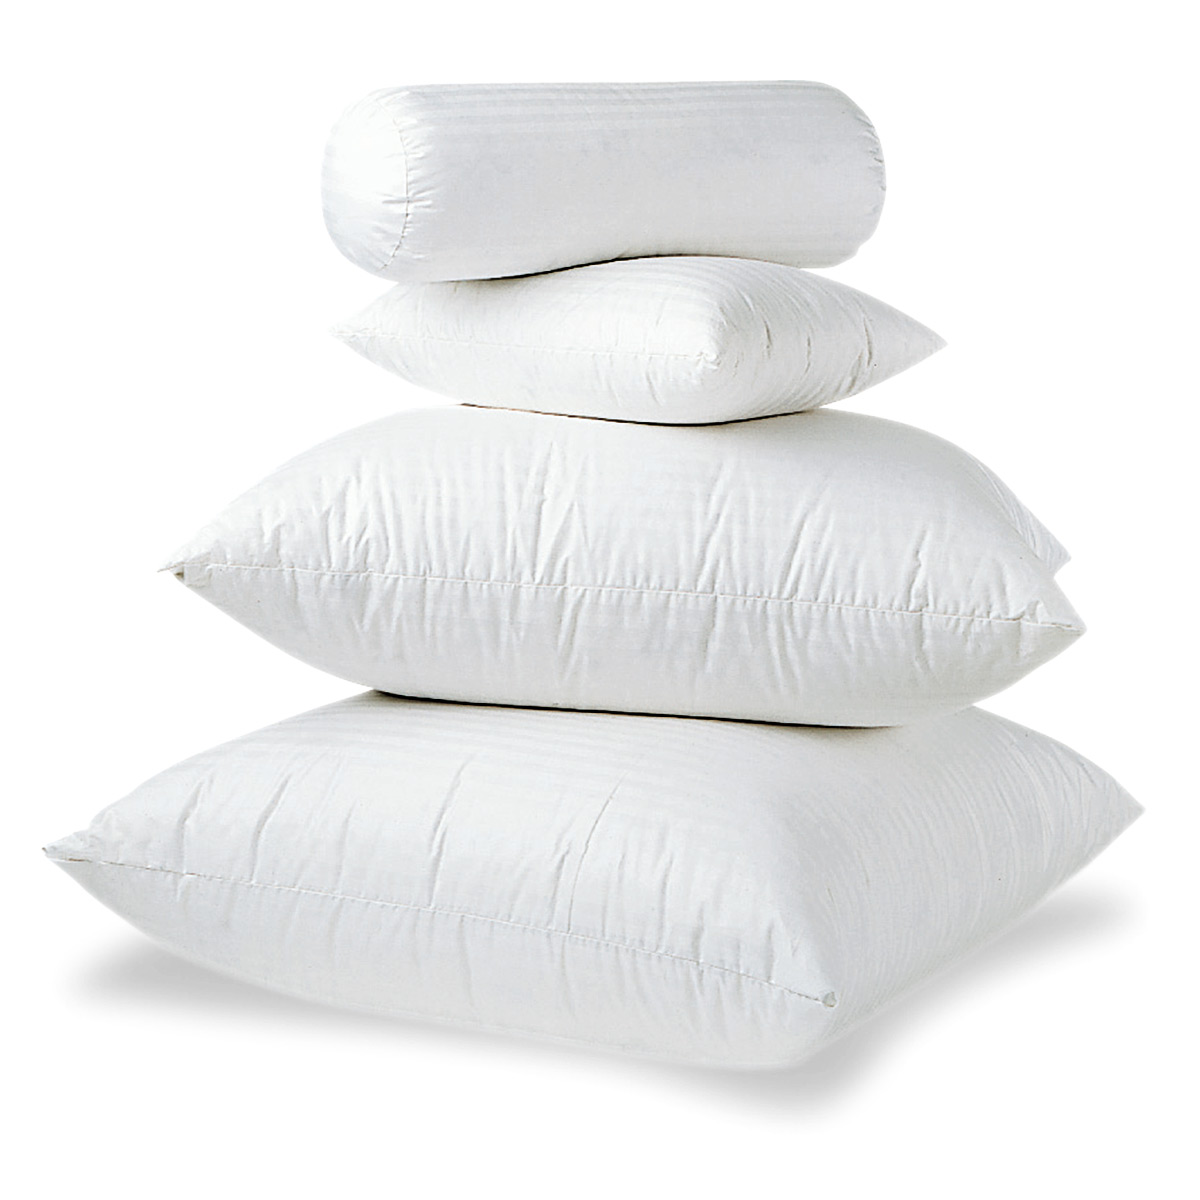 Empire Down Pillows, 700 fill power Hungarian Goose Down